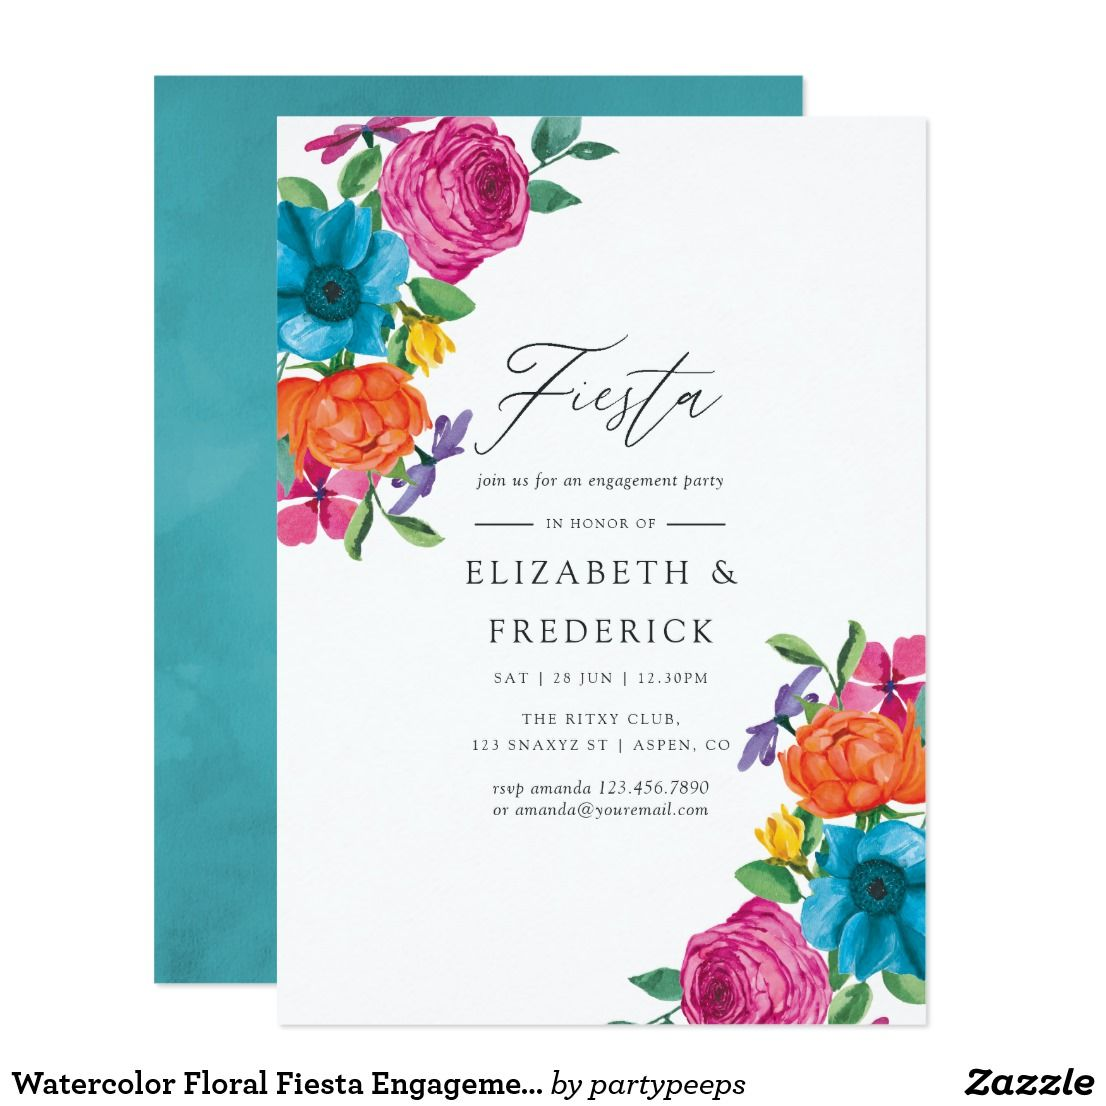 Watercolor Floral Fiesta Engagement Party Invitation